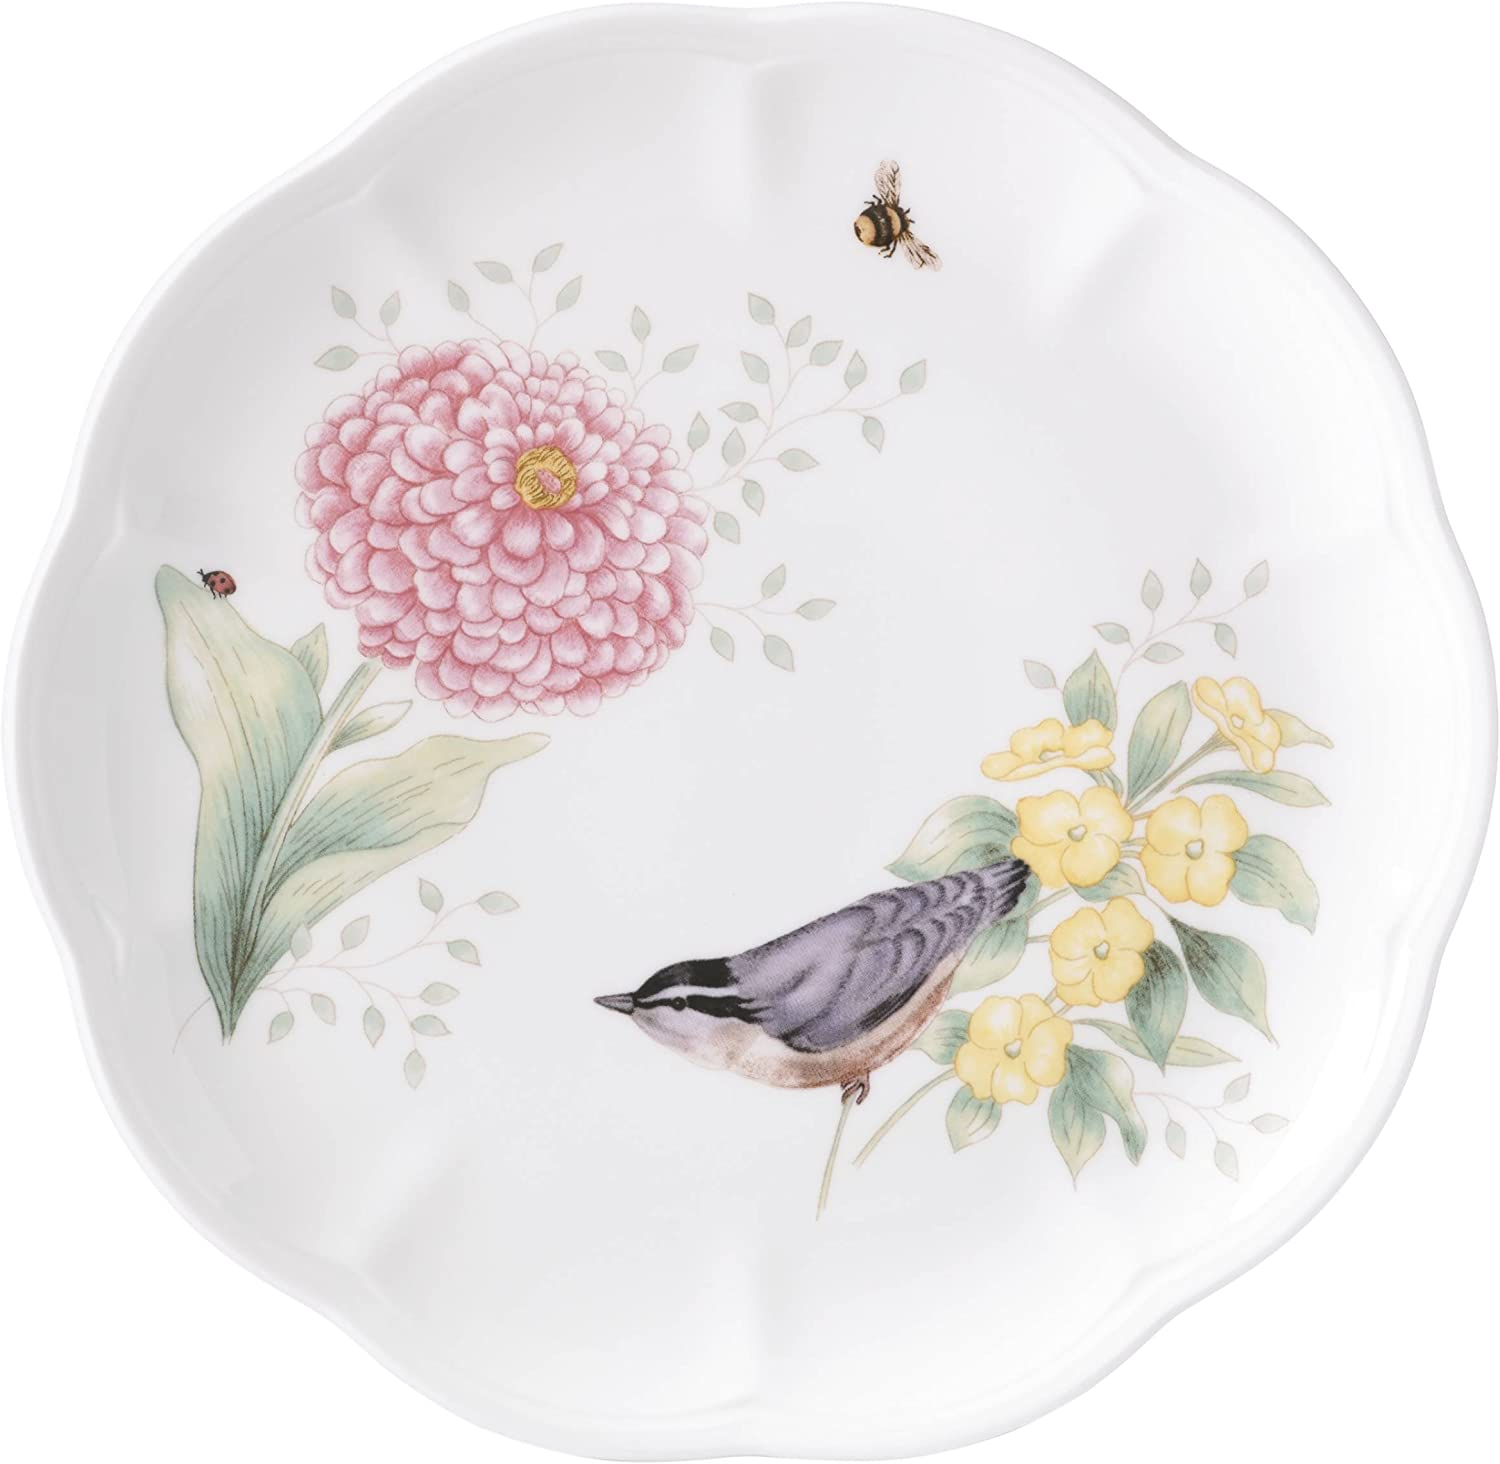 Max 84% OFF Lenox 1 year warranty Accent Salad Plate